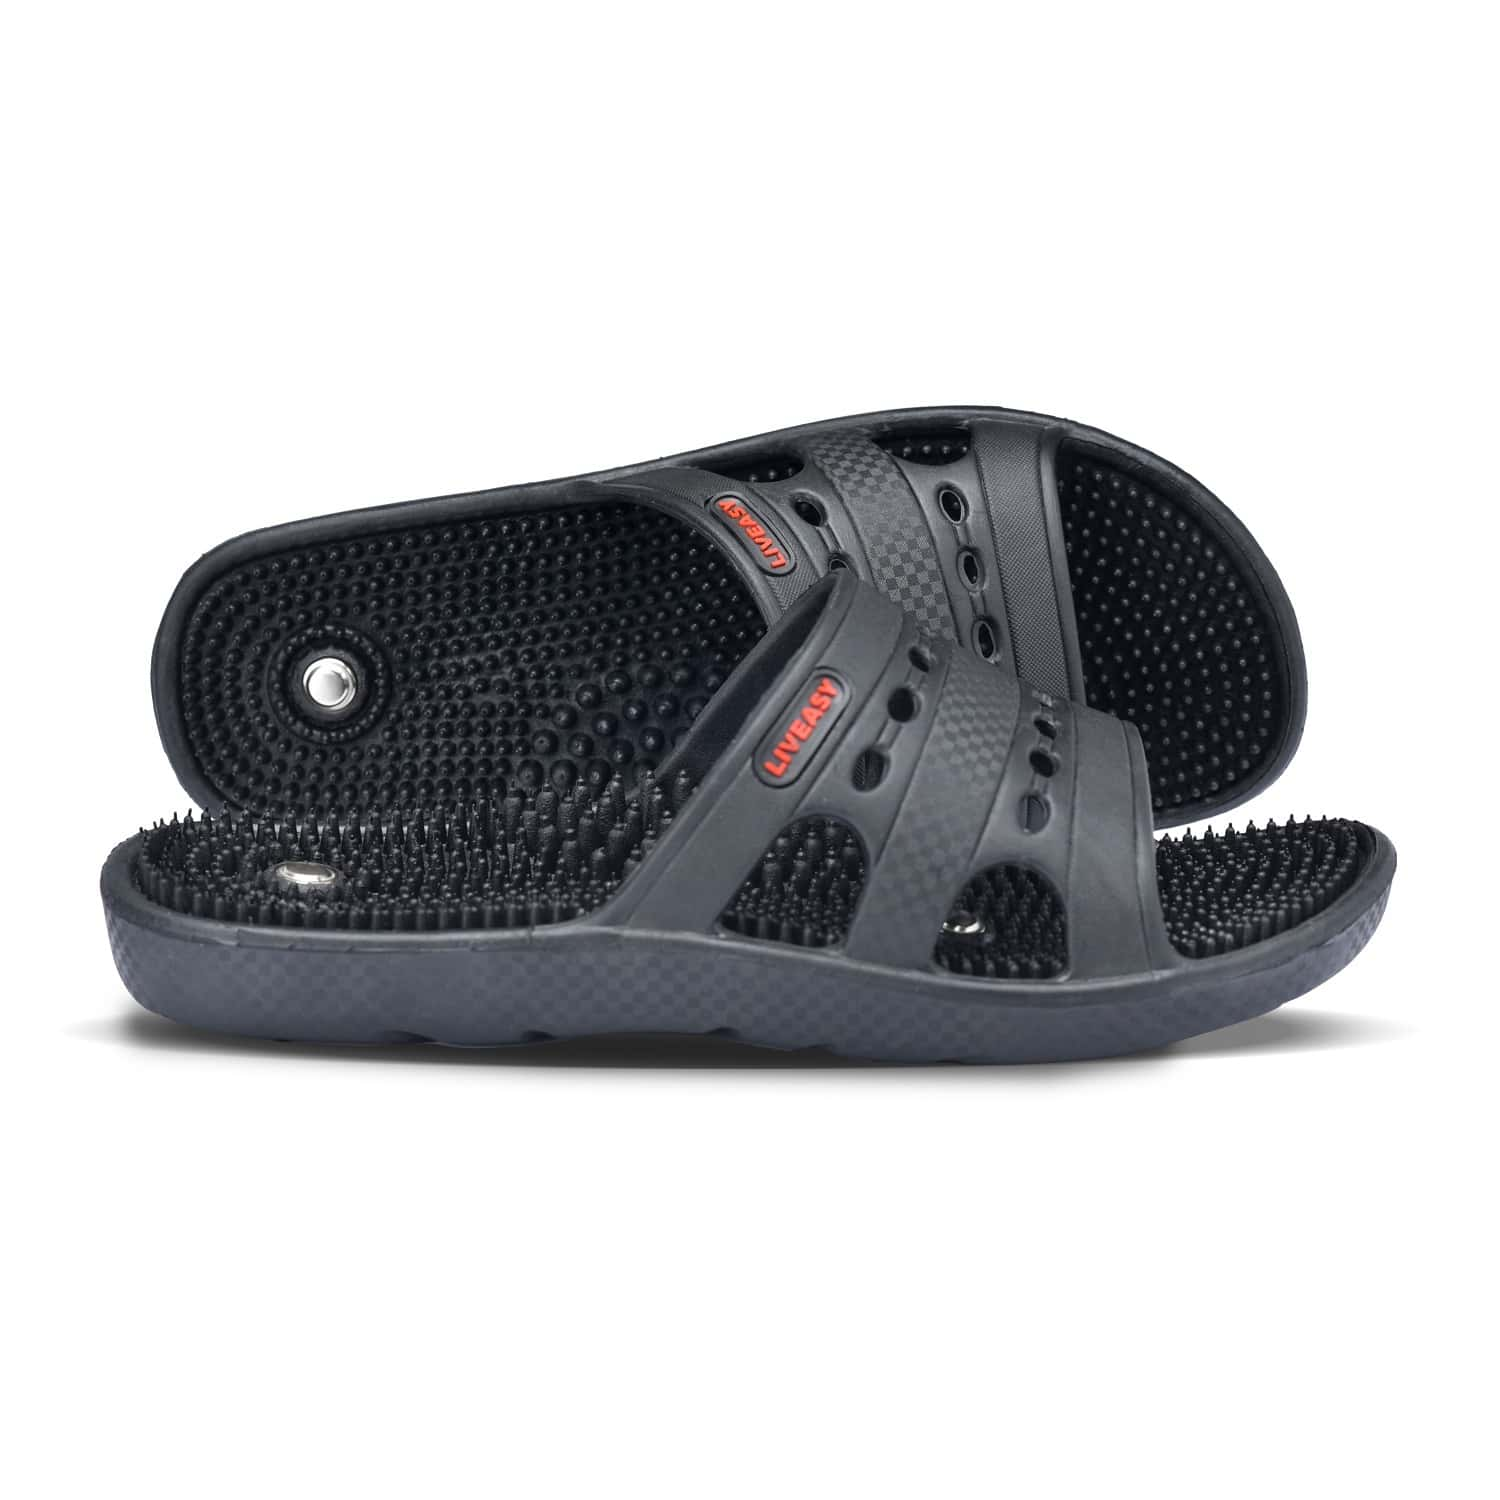 Liveasy Ortho Care Acupressure Slippers - Women (black) Size 9